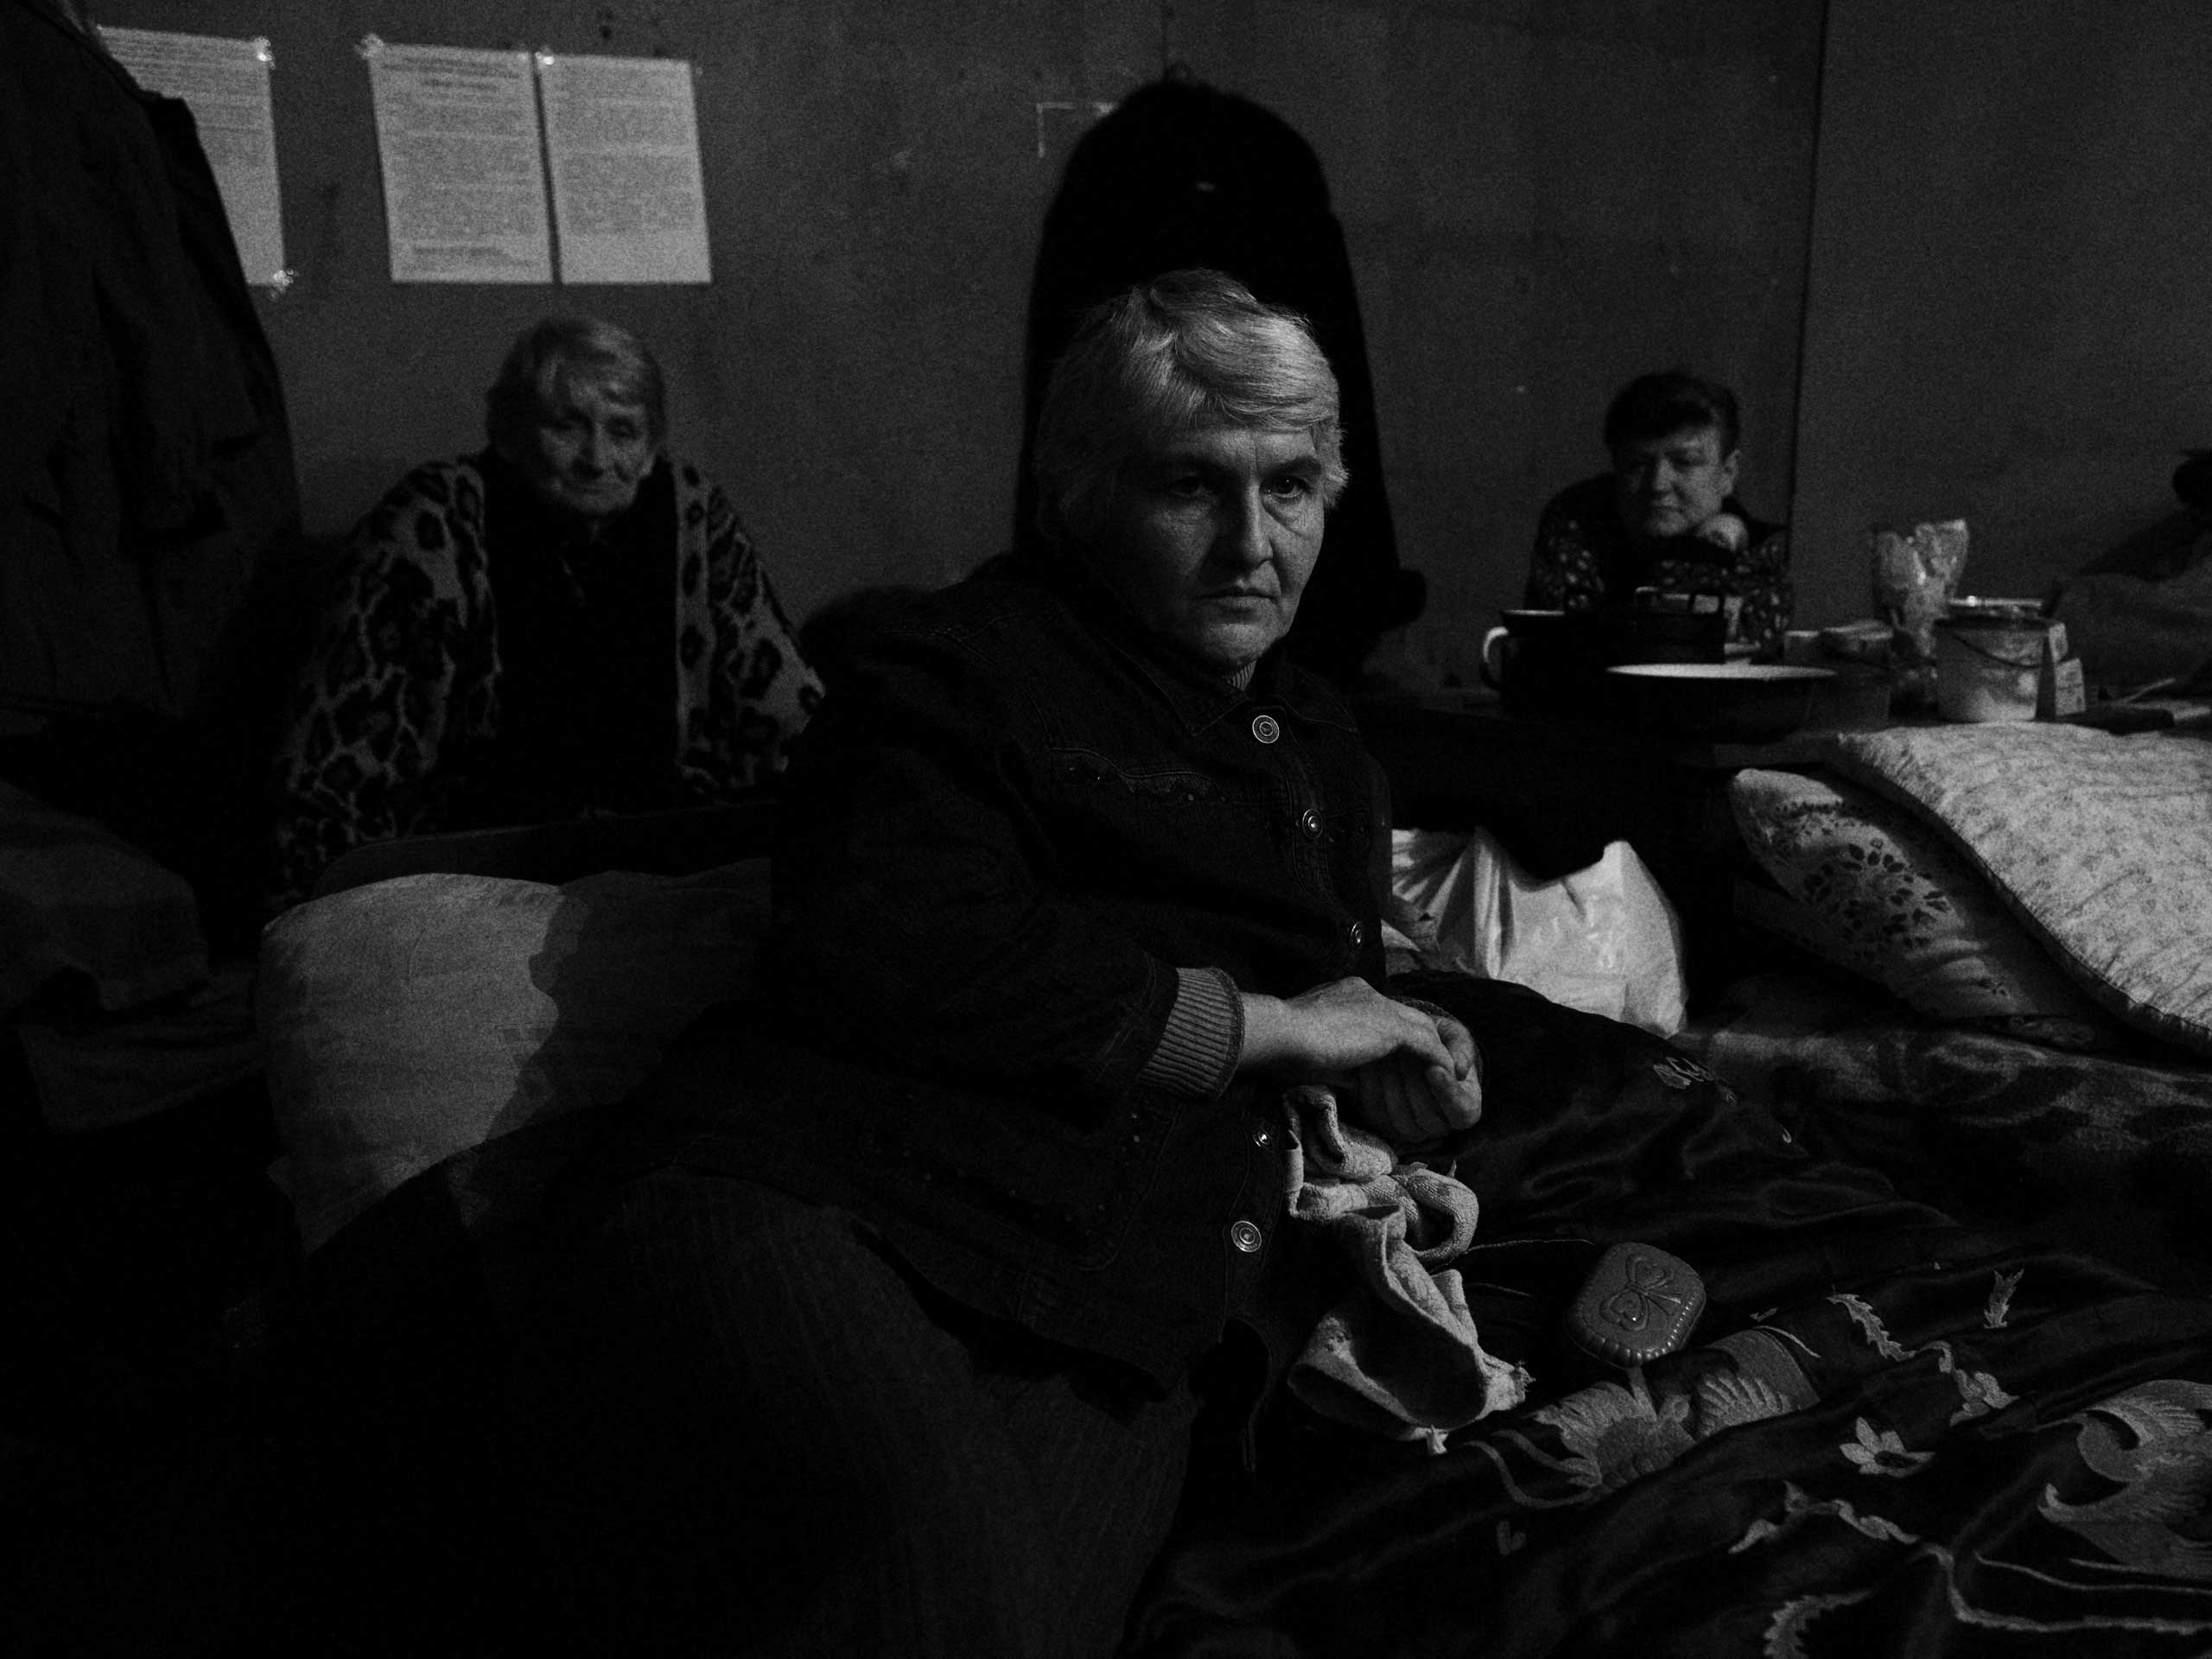 Tanya and two other women are pictured where they sleep in the shelter. Days pass slowly and stress begins to affect the residents. Trudovski, Donetsk Oblast, Ukraine. Nov. 1, 2014.